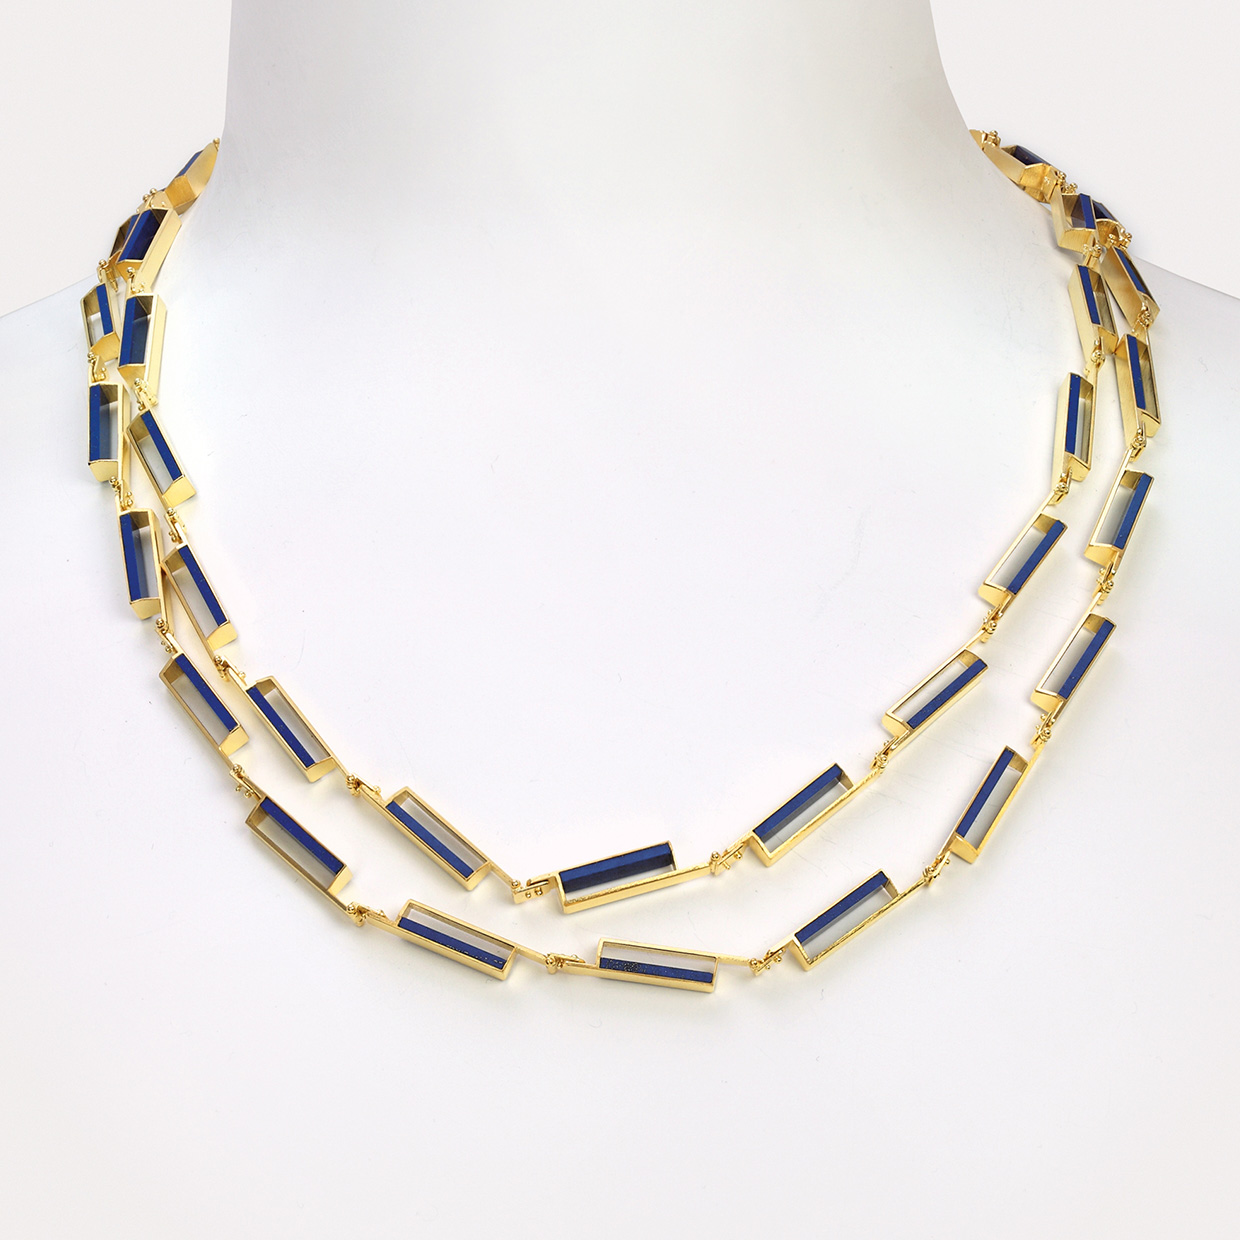 necklace  2015  gold  750  lapislazuli  1190x5  mm